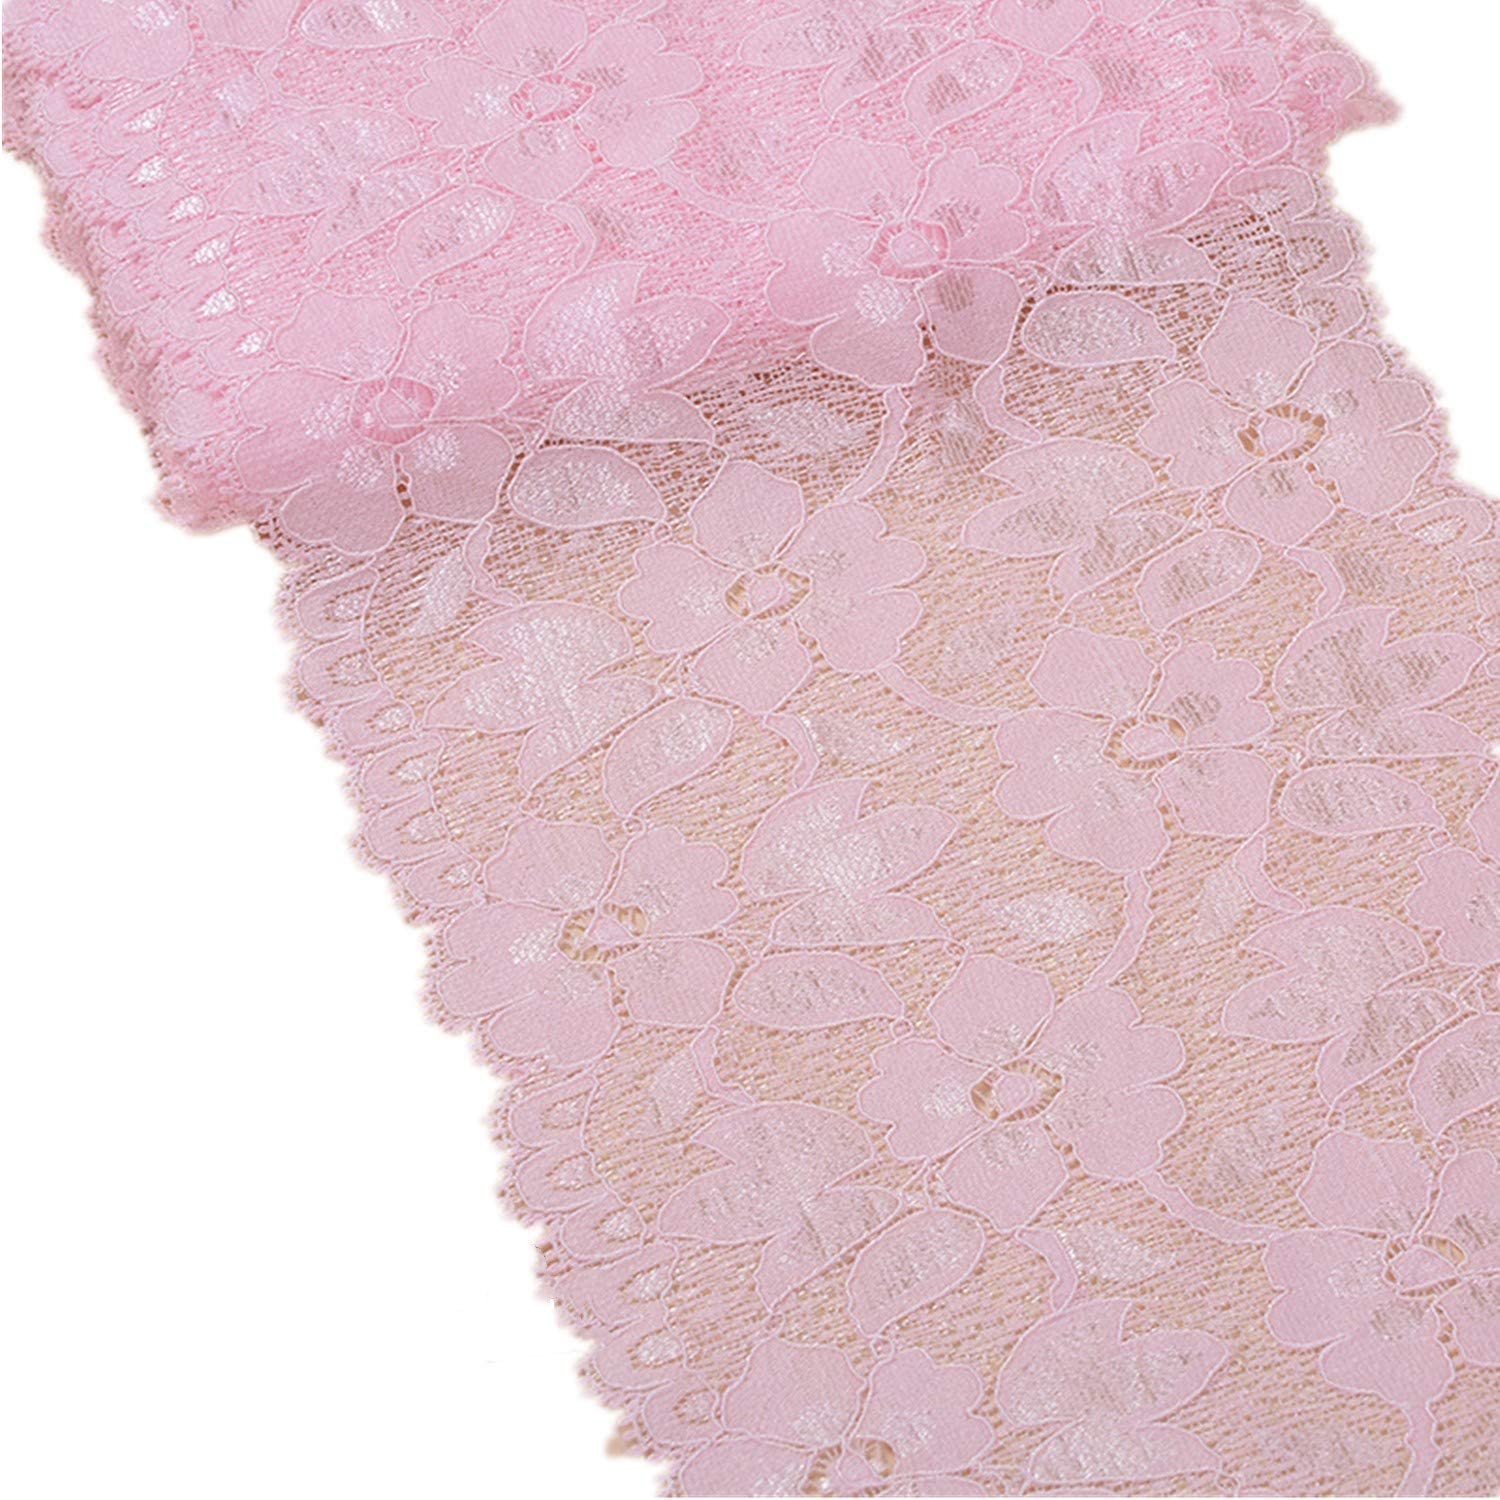 MSCFTFB 5 Yards Width 6.3 Inch Stretch Lace Trim Fabric Elastic Lace Flowers Embroidered Ribbon for Garment Craft Embellishment Wedding Baby Shower Table Decorations (Pink)